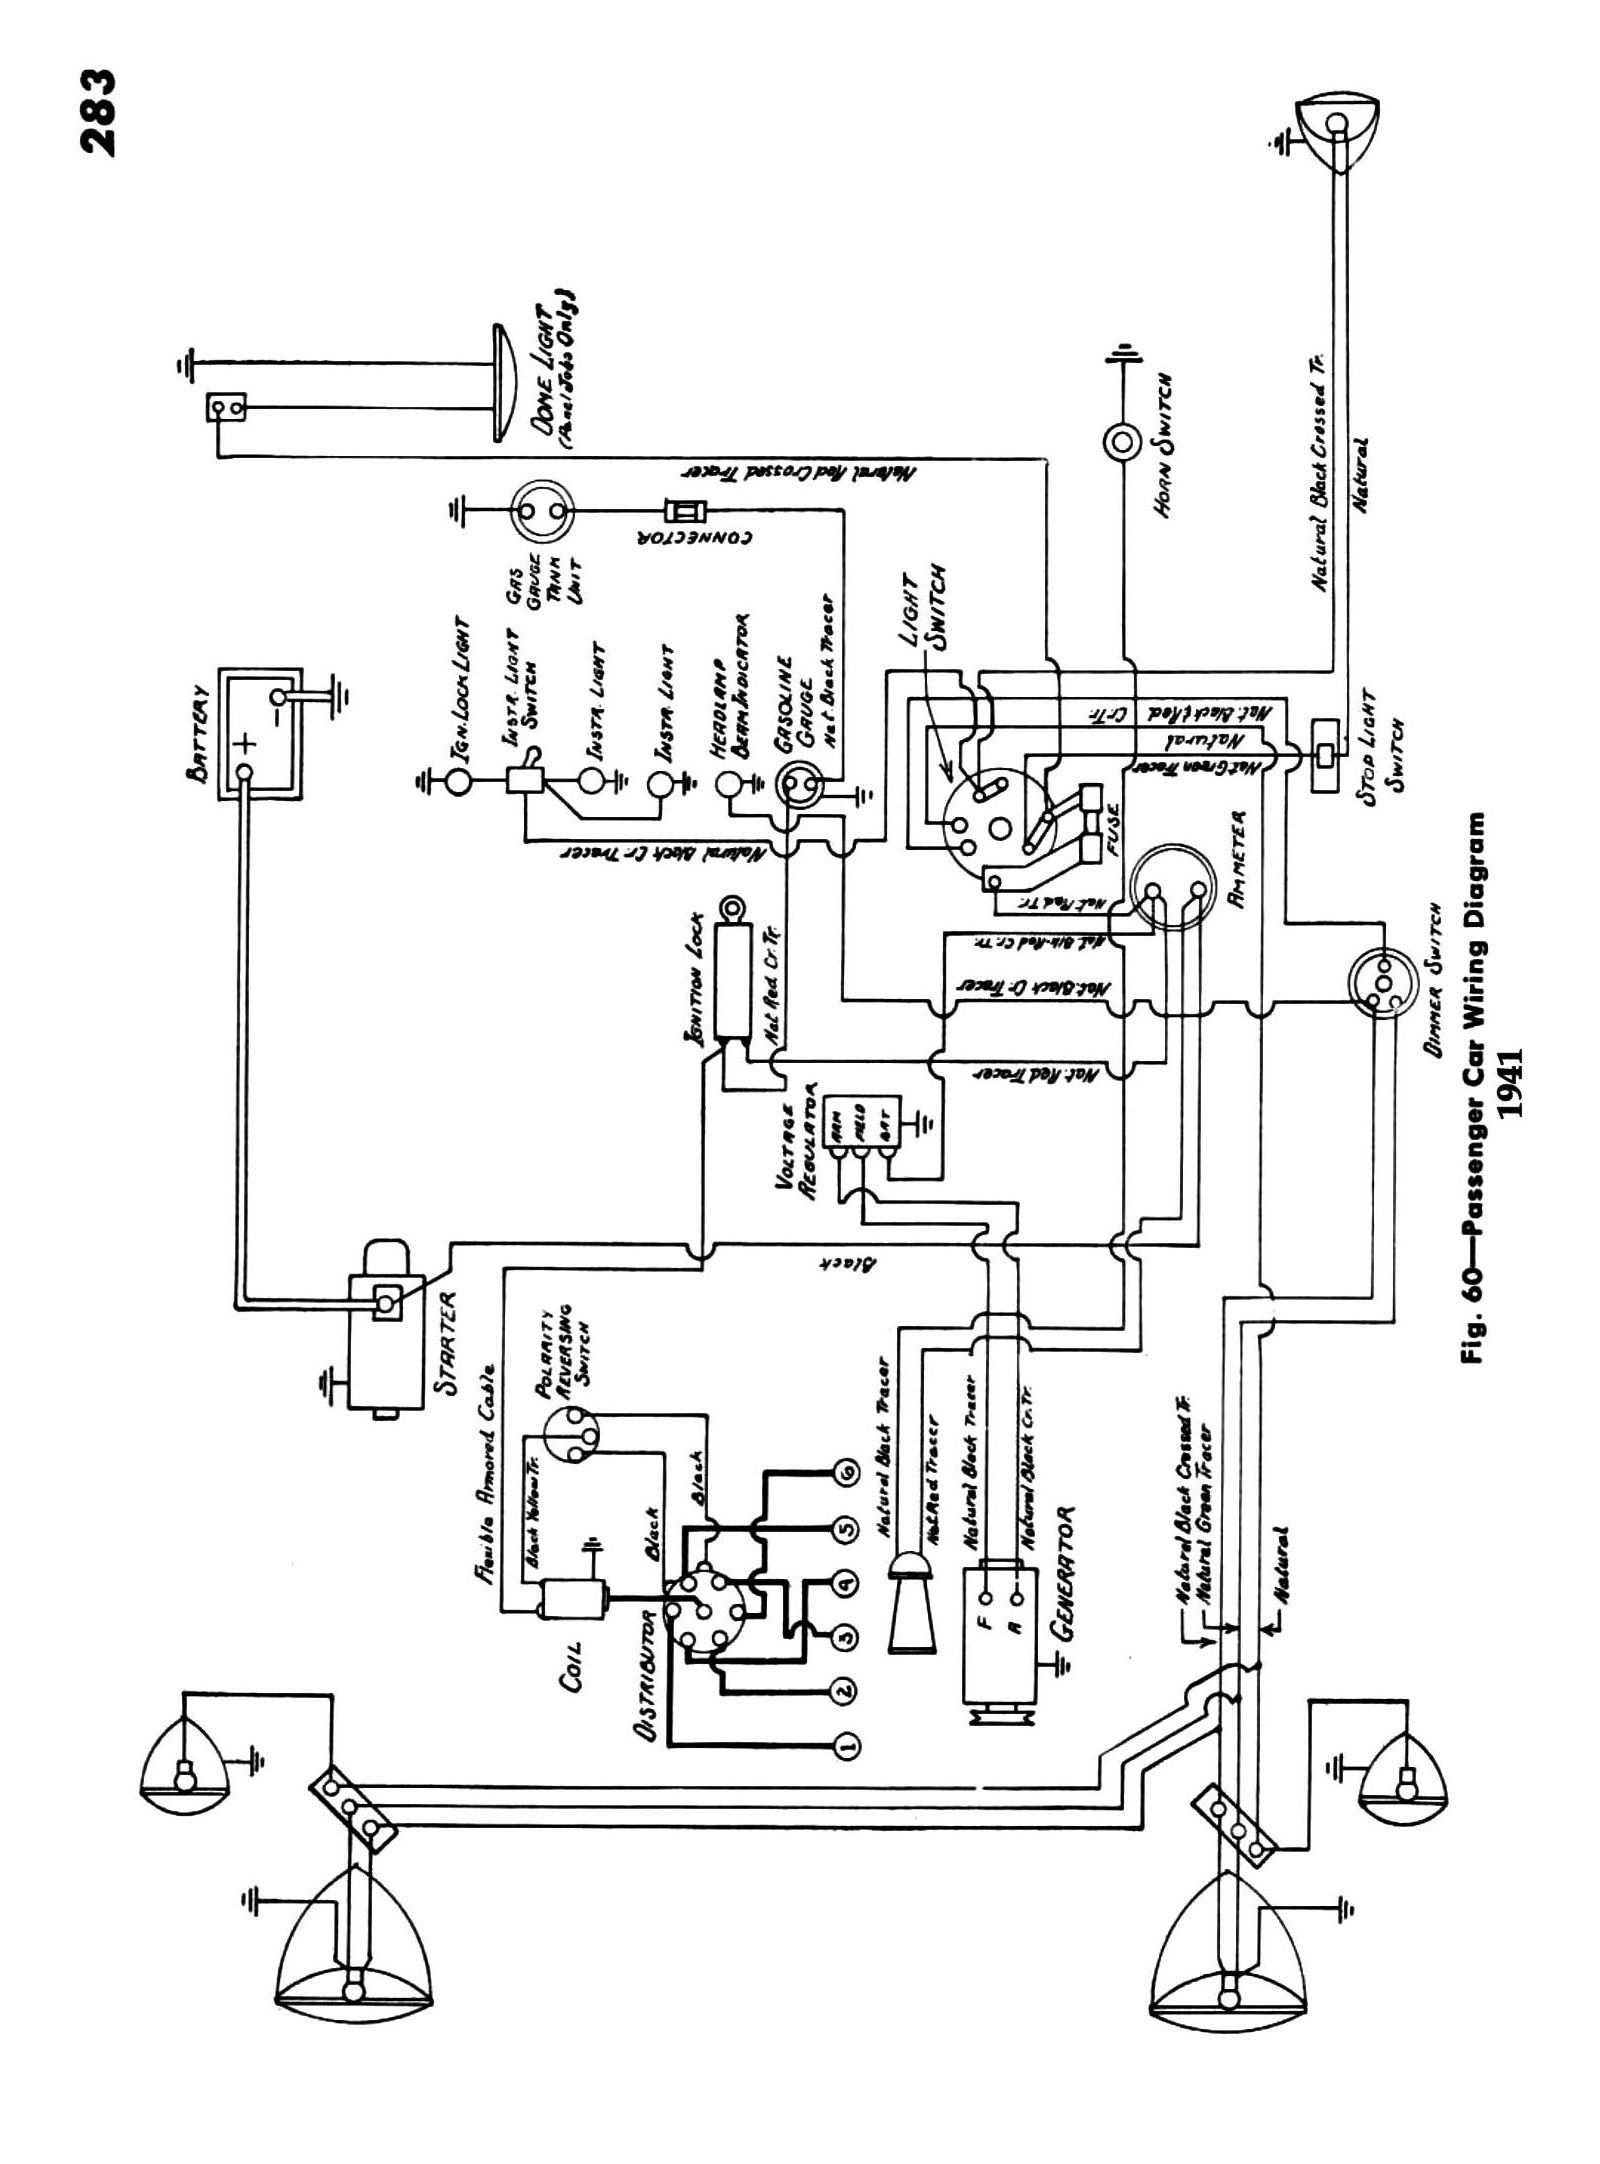 hight resolution of 58 chevy wiring diagram wiring diagram 1958 chevy wiring diagram wiring diagram expert1958 chevy truck wiring